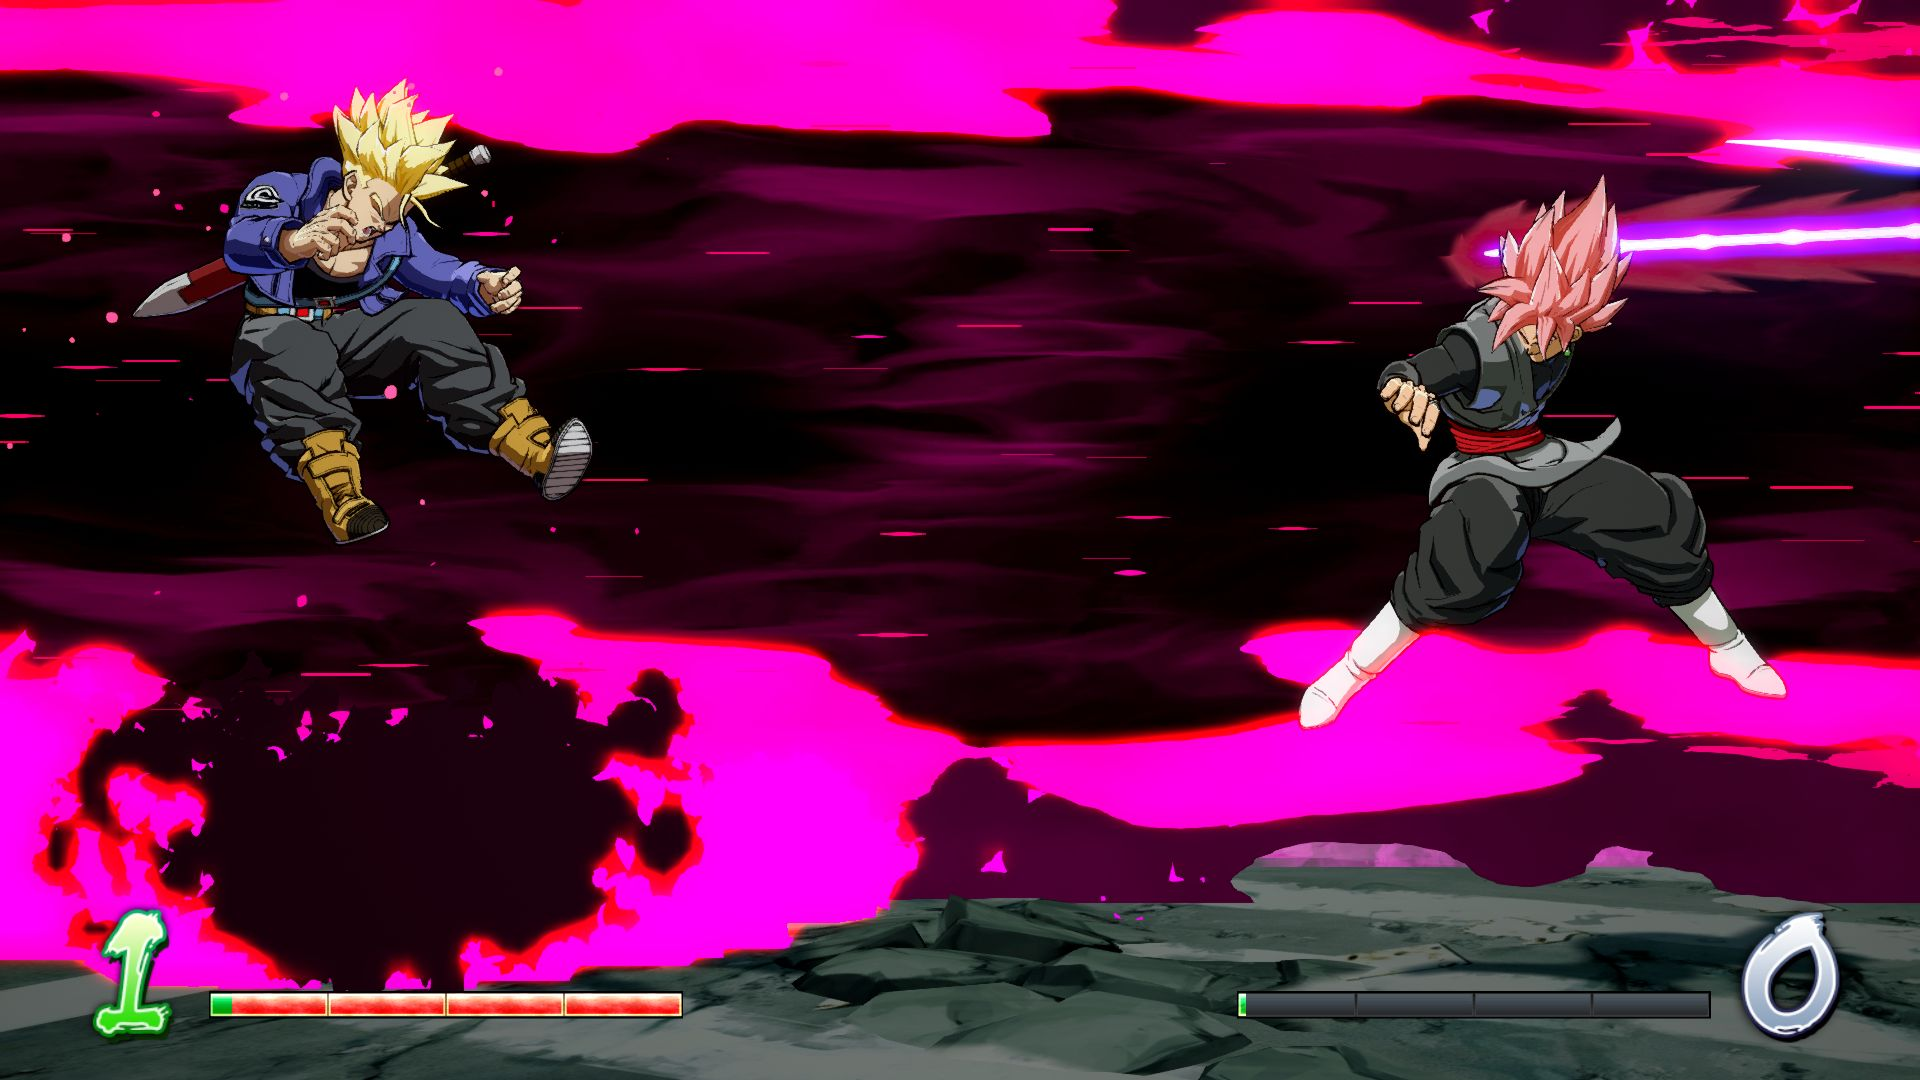 Beerus Hit And Goku Black Coming To Dragon Ball FighterZ Open Beta Begins Next Month Gaming